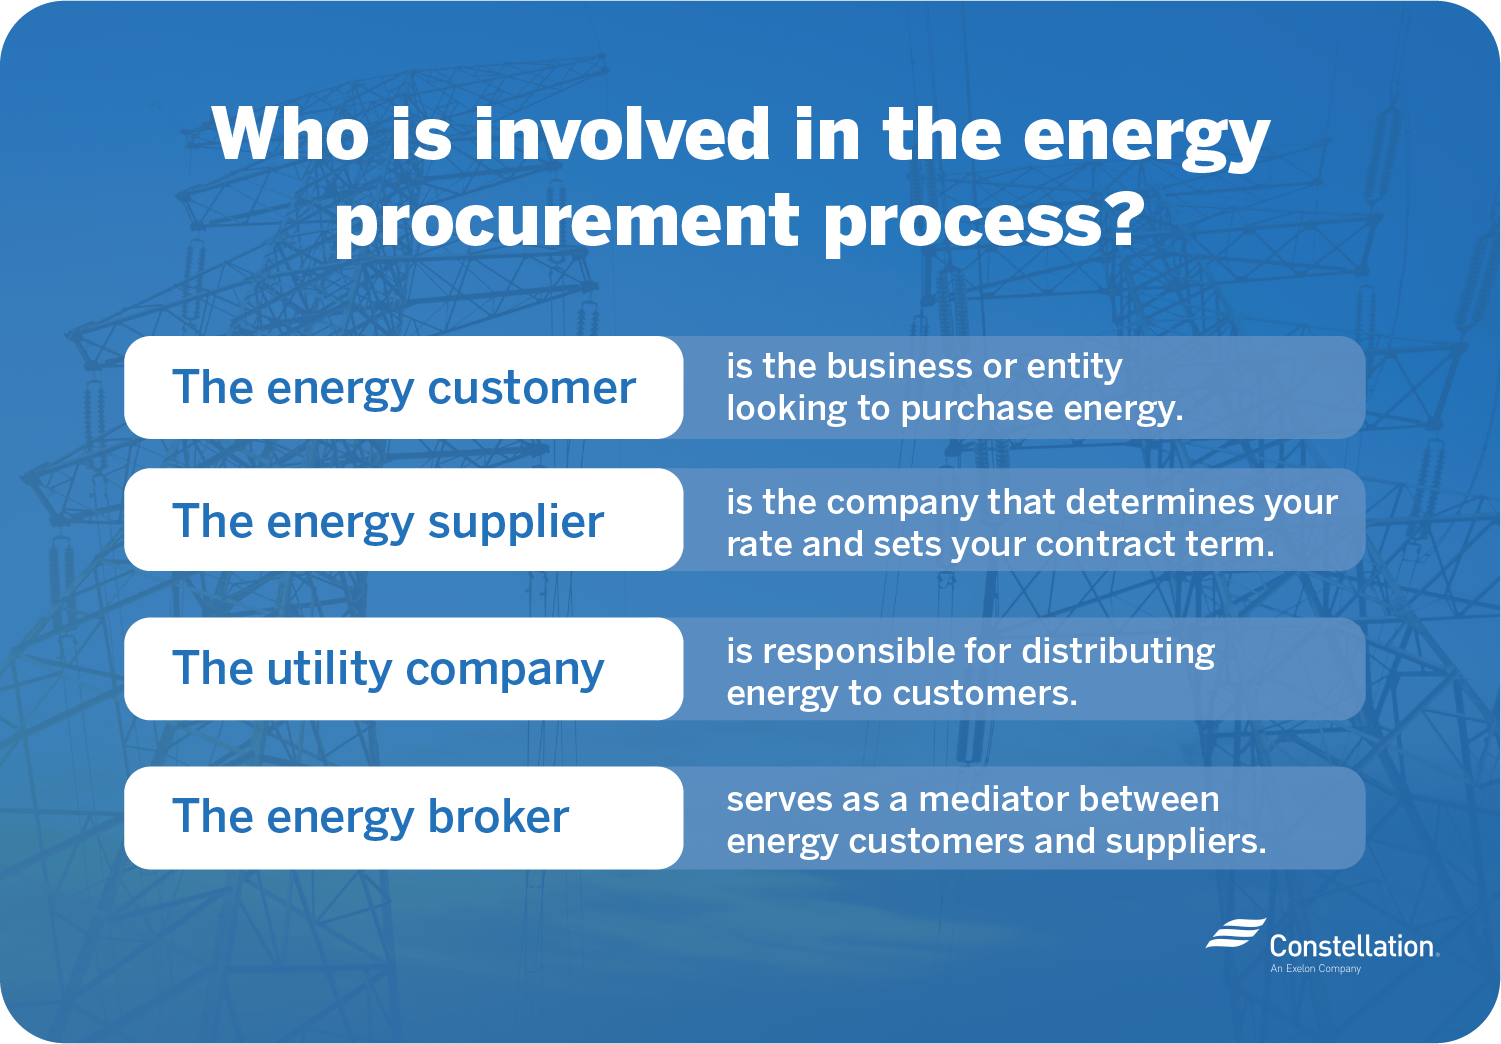 Who is involved in the energy procurement process?